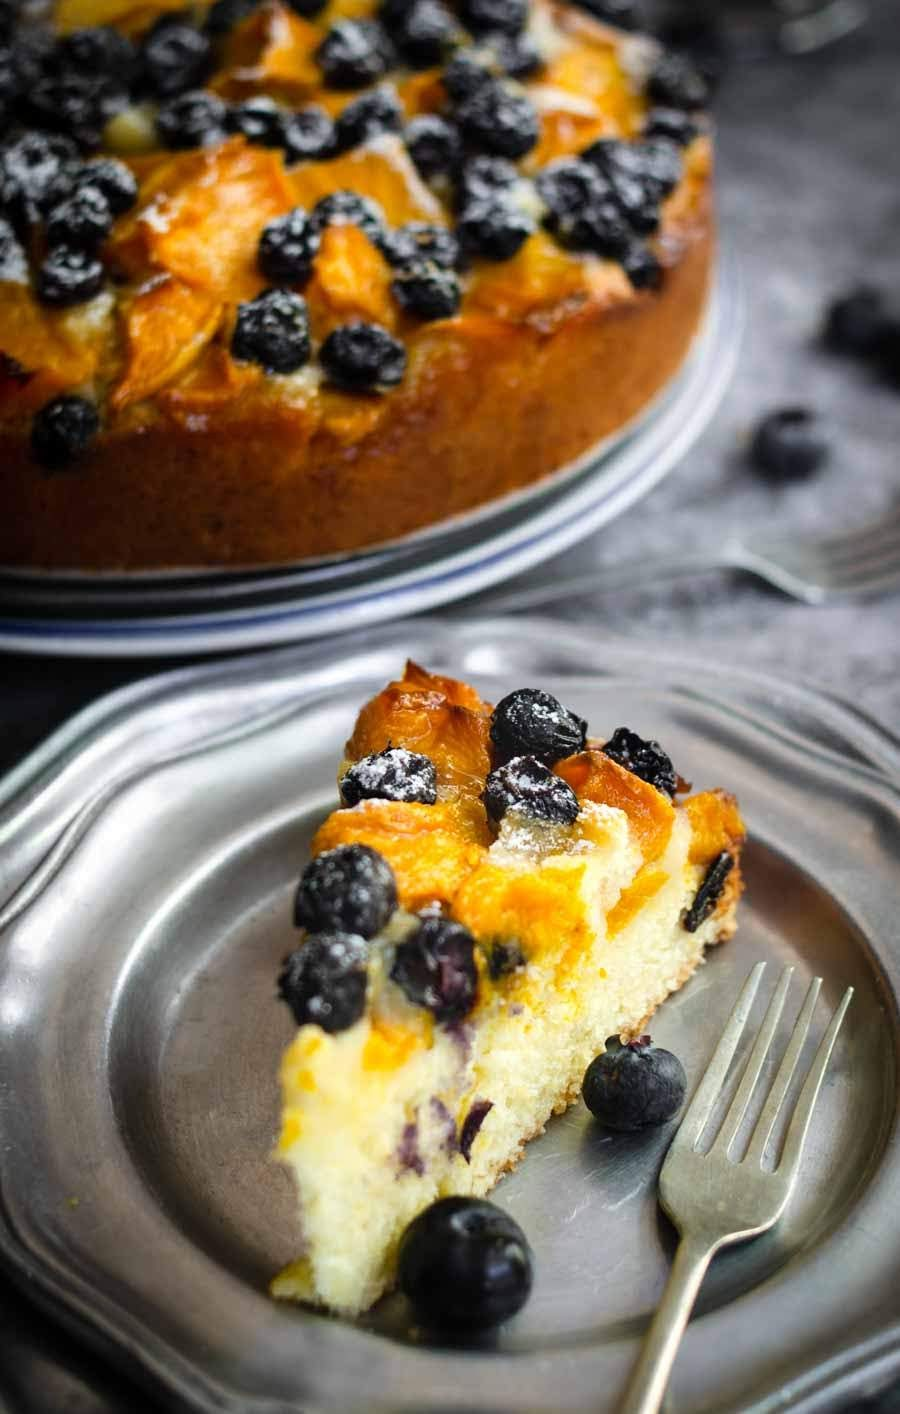 delicious Blueberries and mango pastry cake